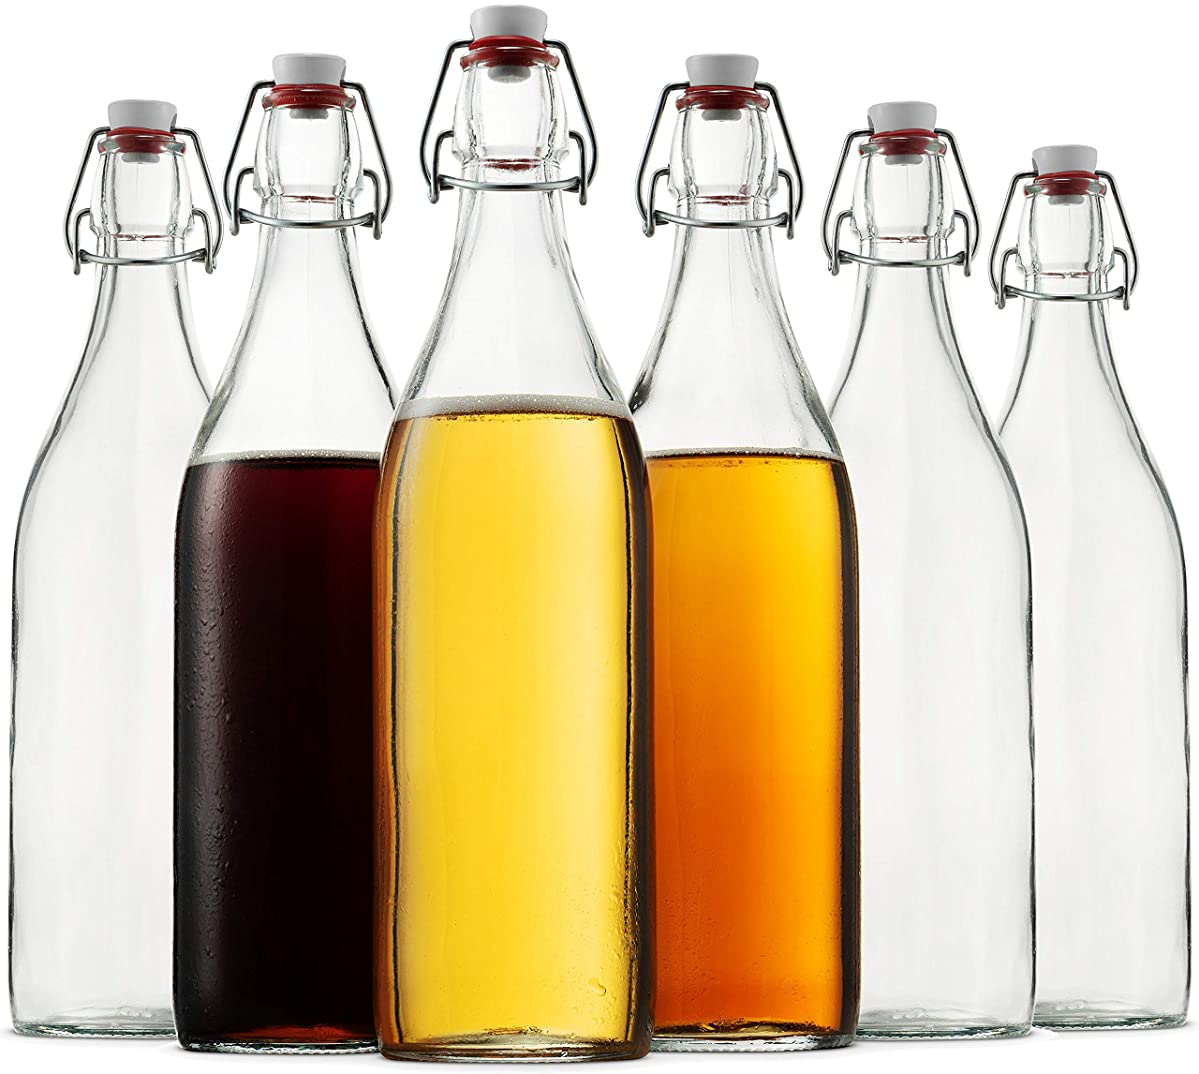 Bormioli Rocco Giara ROUND Clear Glass Bottle With Stopper Swing Top Bottles Great for Beverages, Oil, Vinegar | 33 3/4 oz (Set of 6)